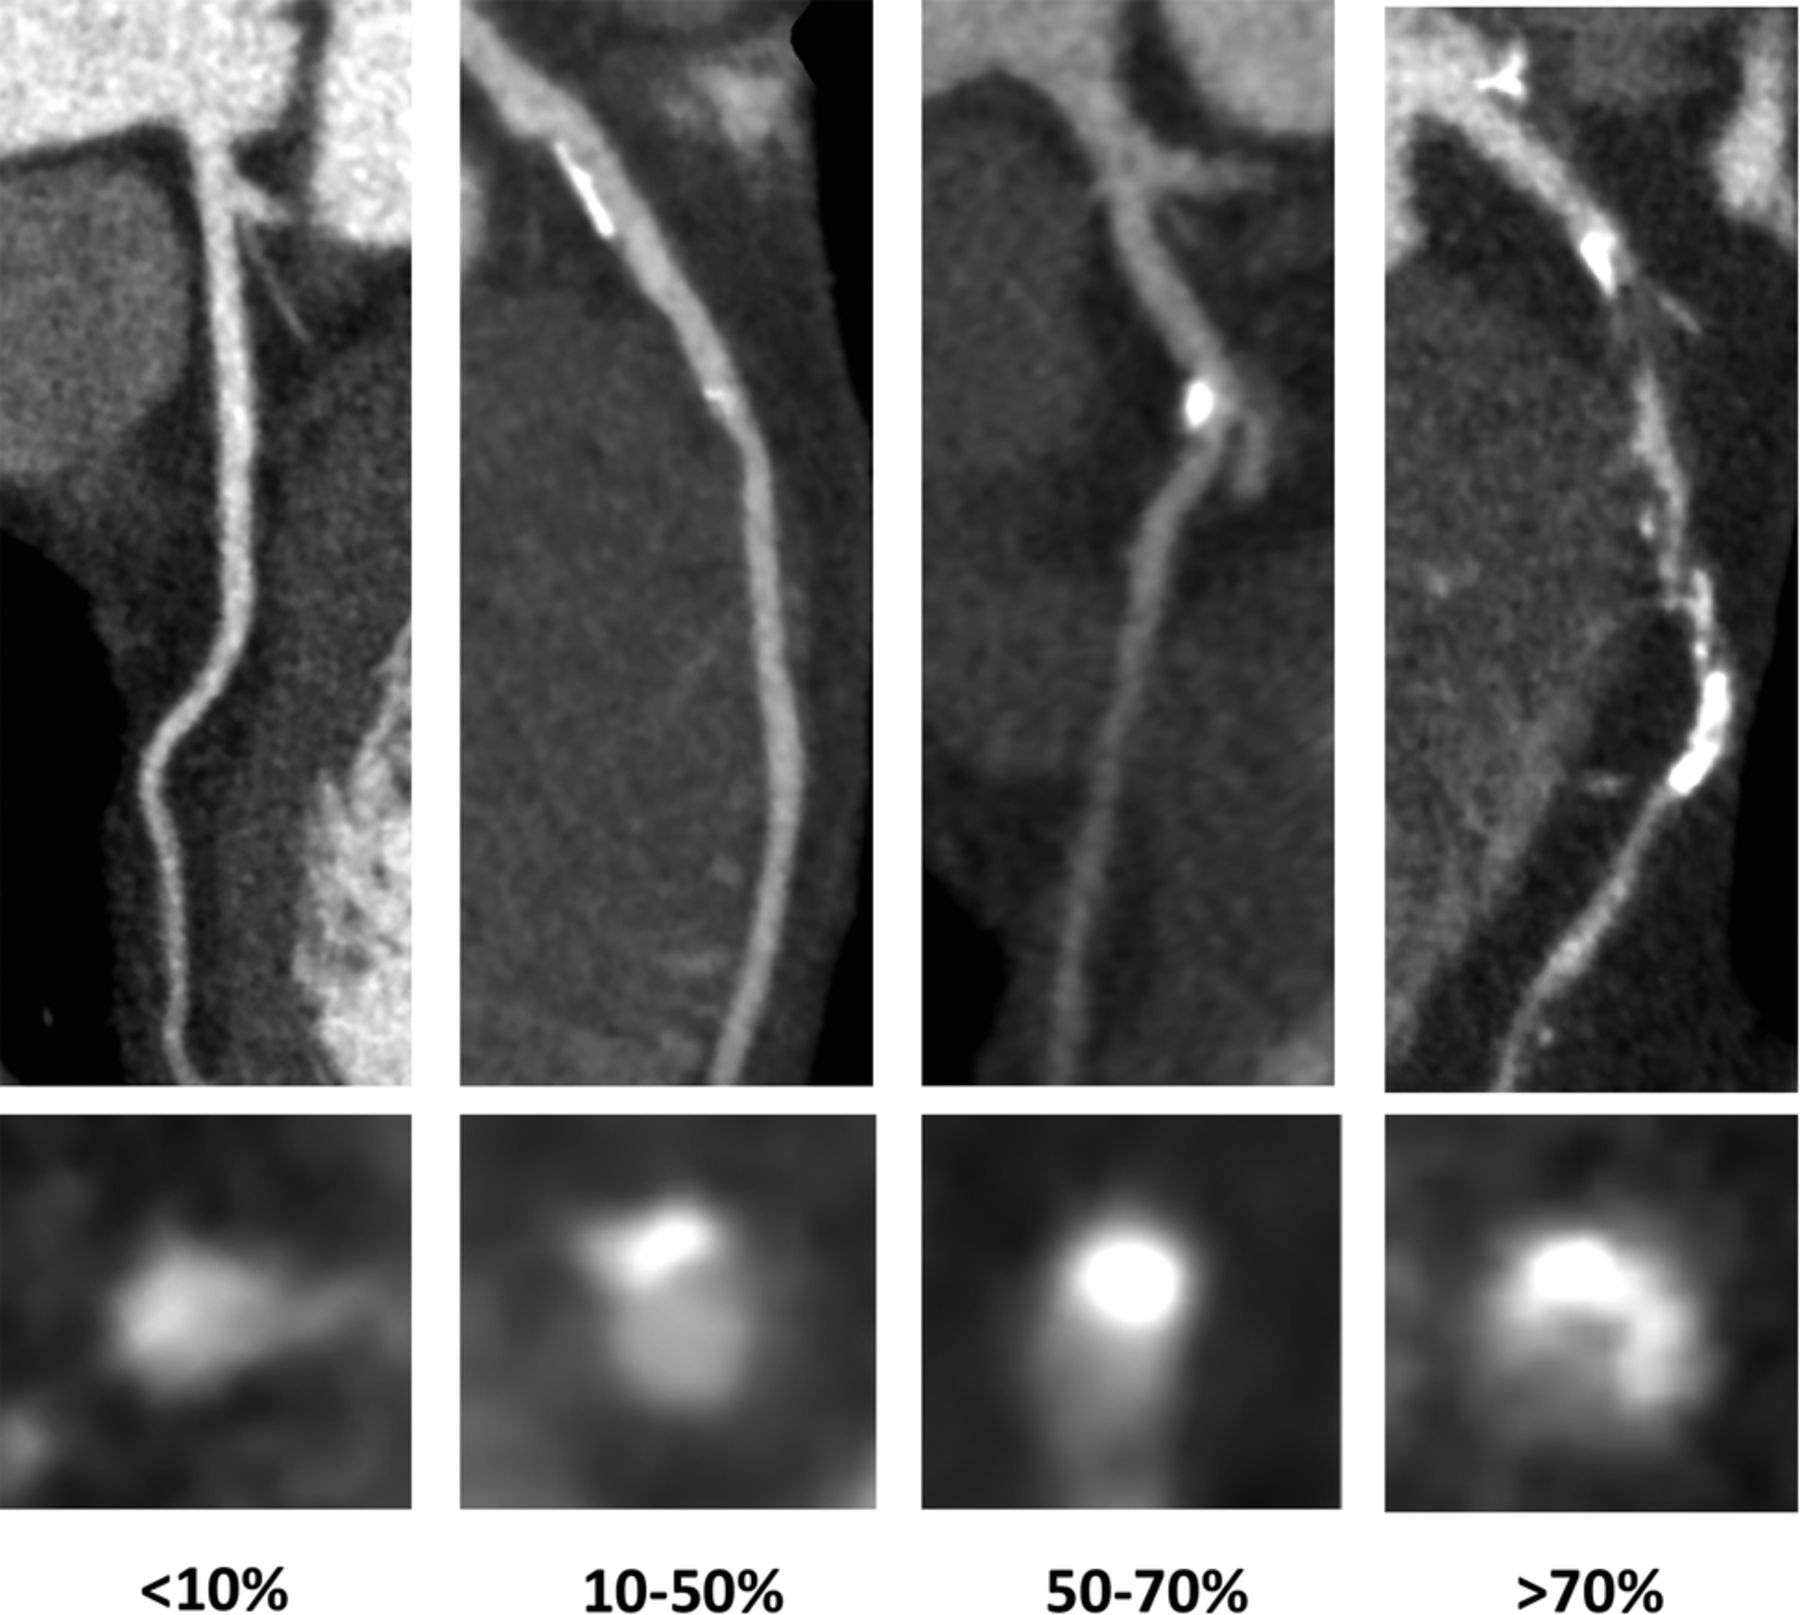 Observer Variability In The Assessment Of Ct Coronary Angiography